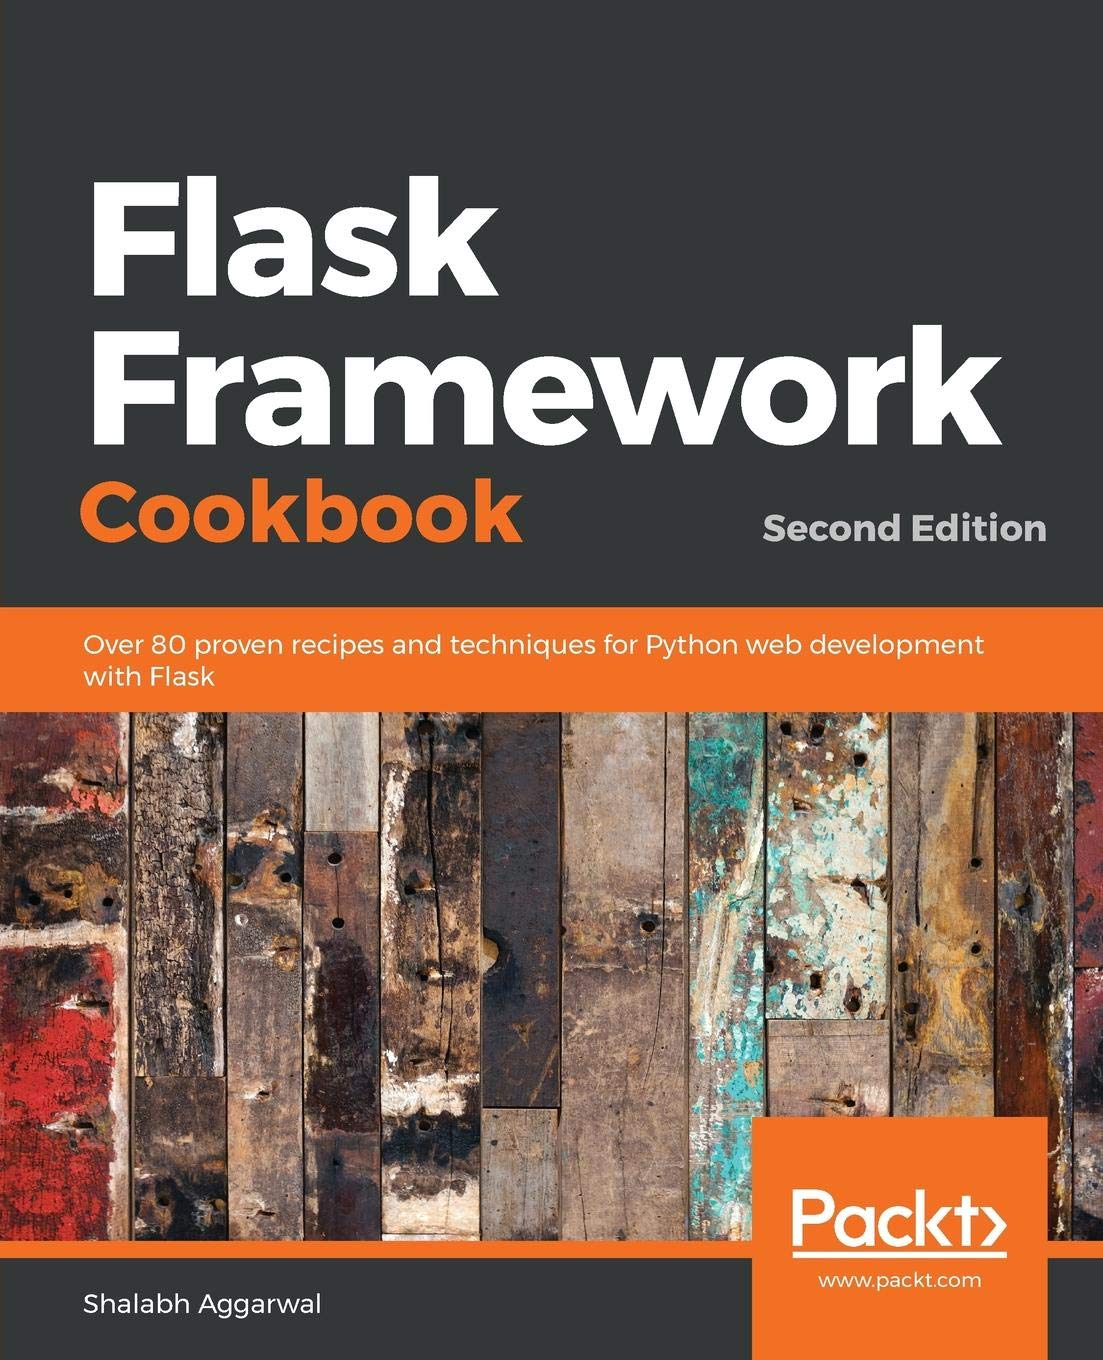 Flask Framework Cookbook: Over 80 proven recipes and